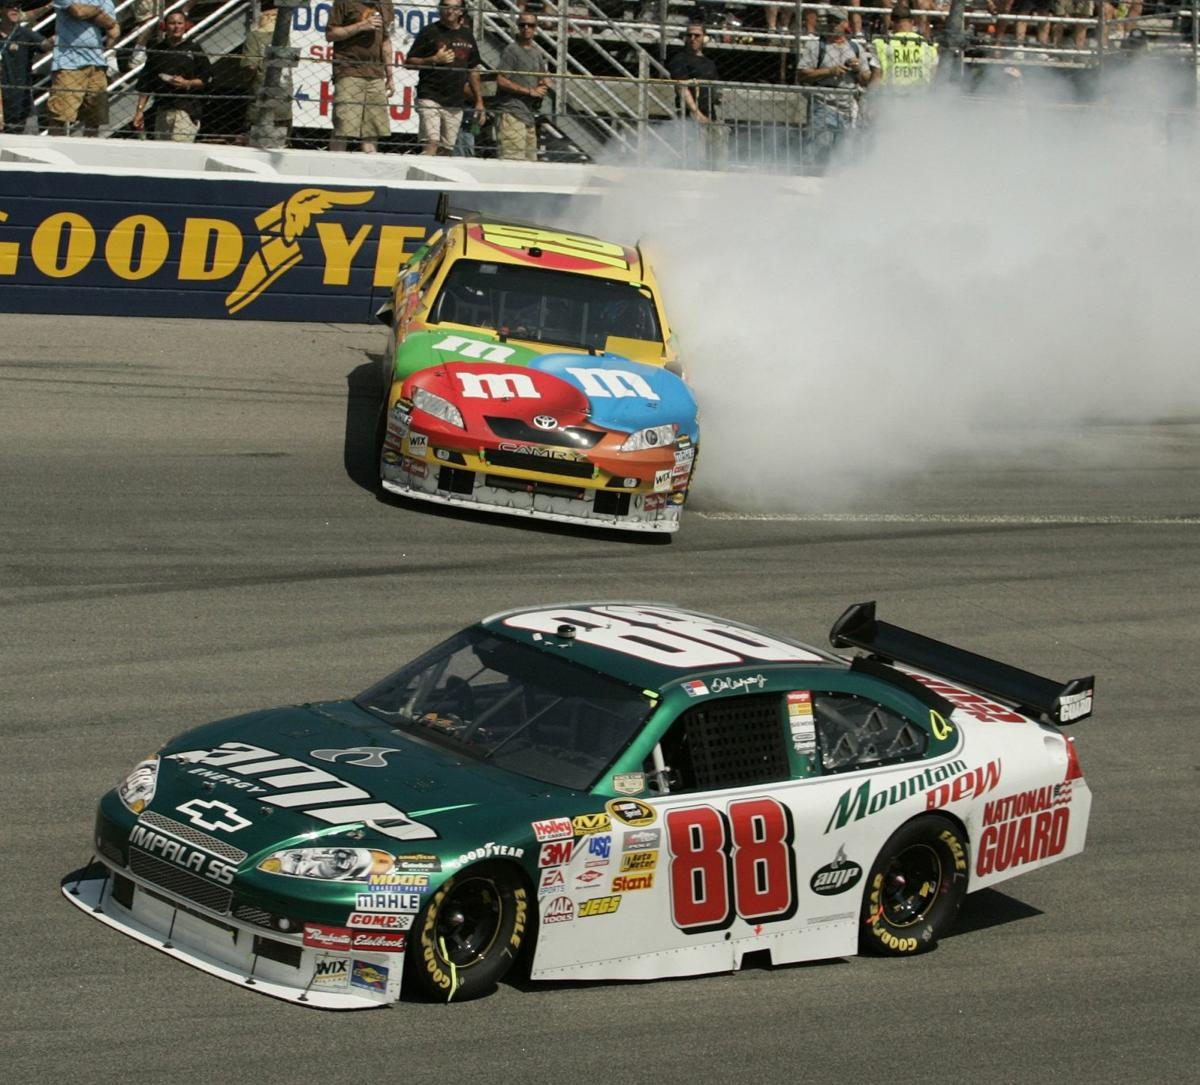 Ten years ago, Kyle Busch wrecked Dale Jr. at Richmond, cementing ...